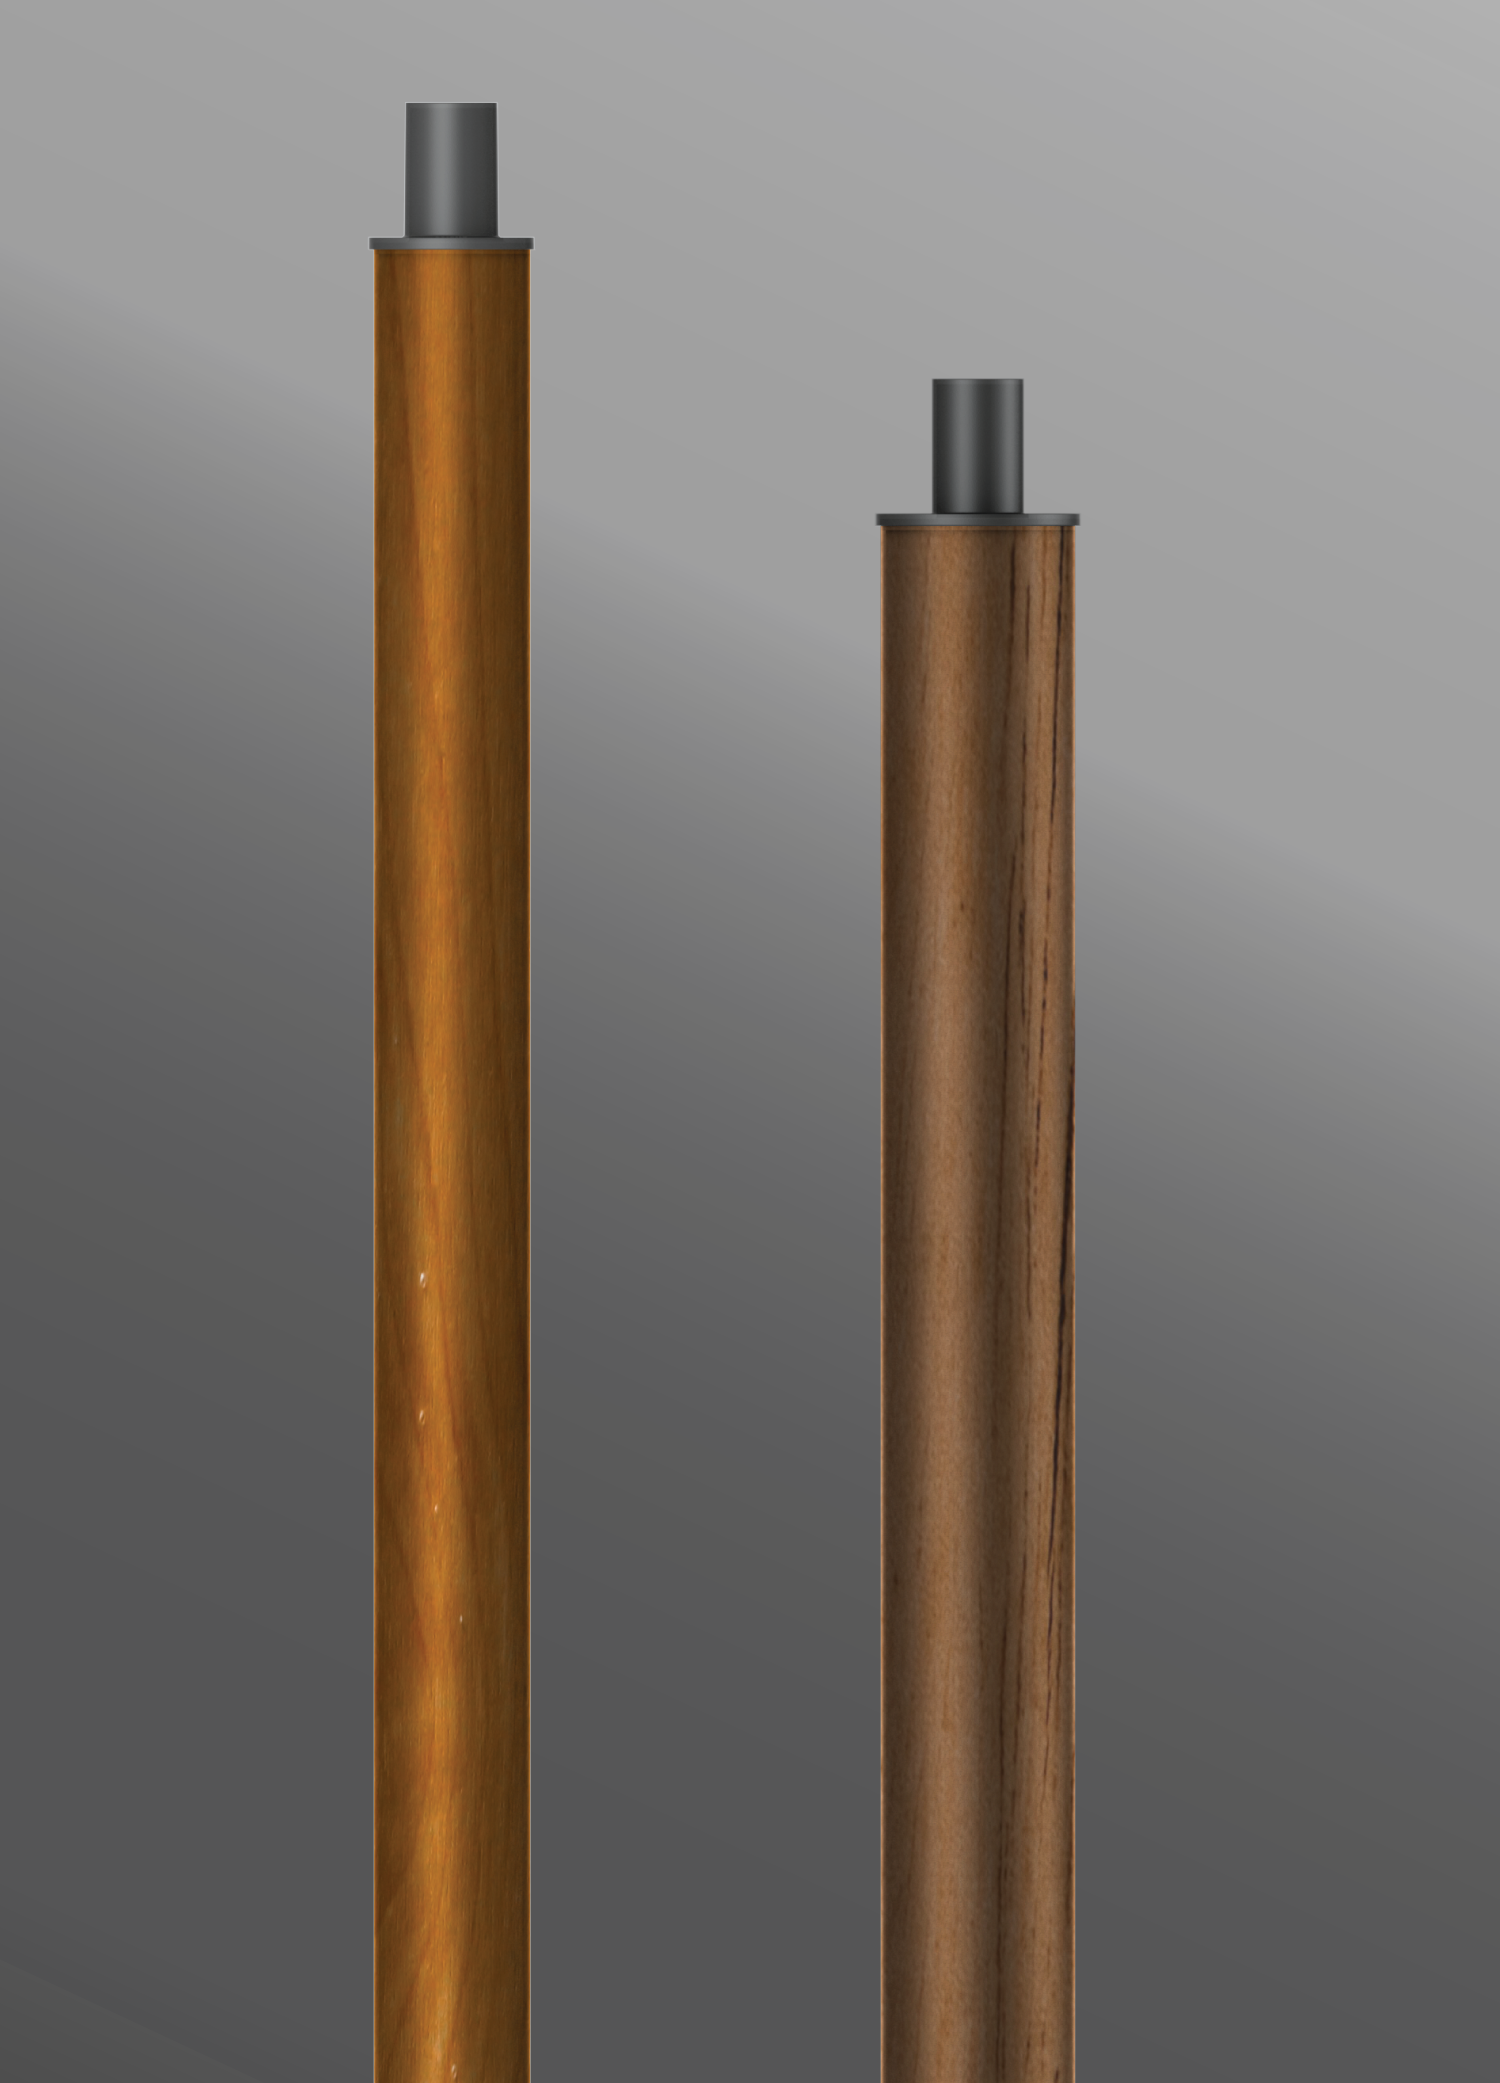 Click to view Ligman Lighting's  Round Straight Aluminum Poles - Woodland Series (model APD-RSA).